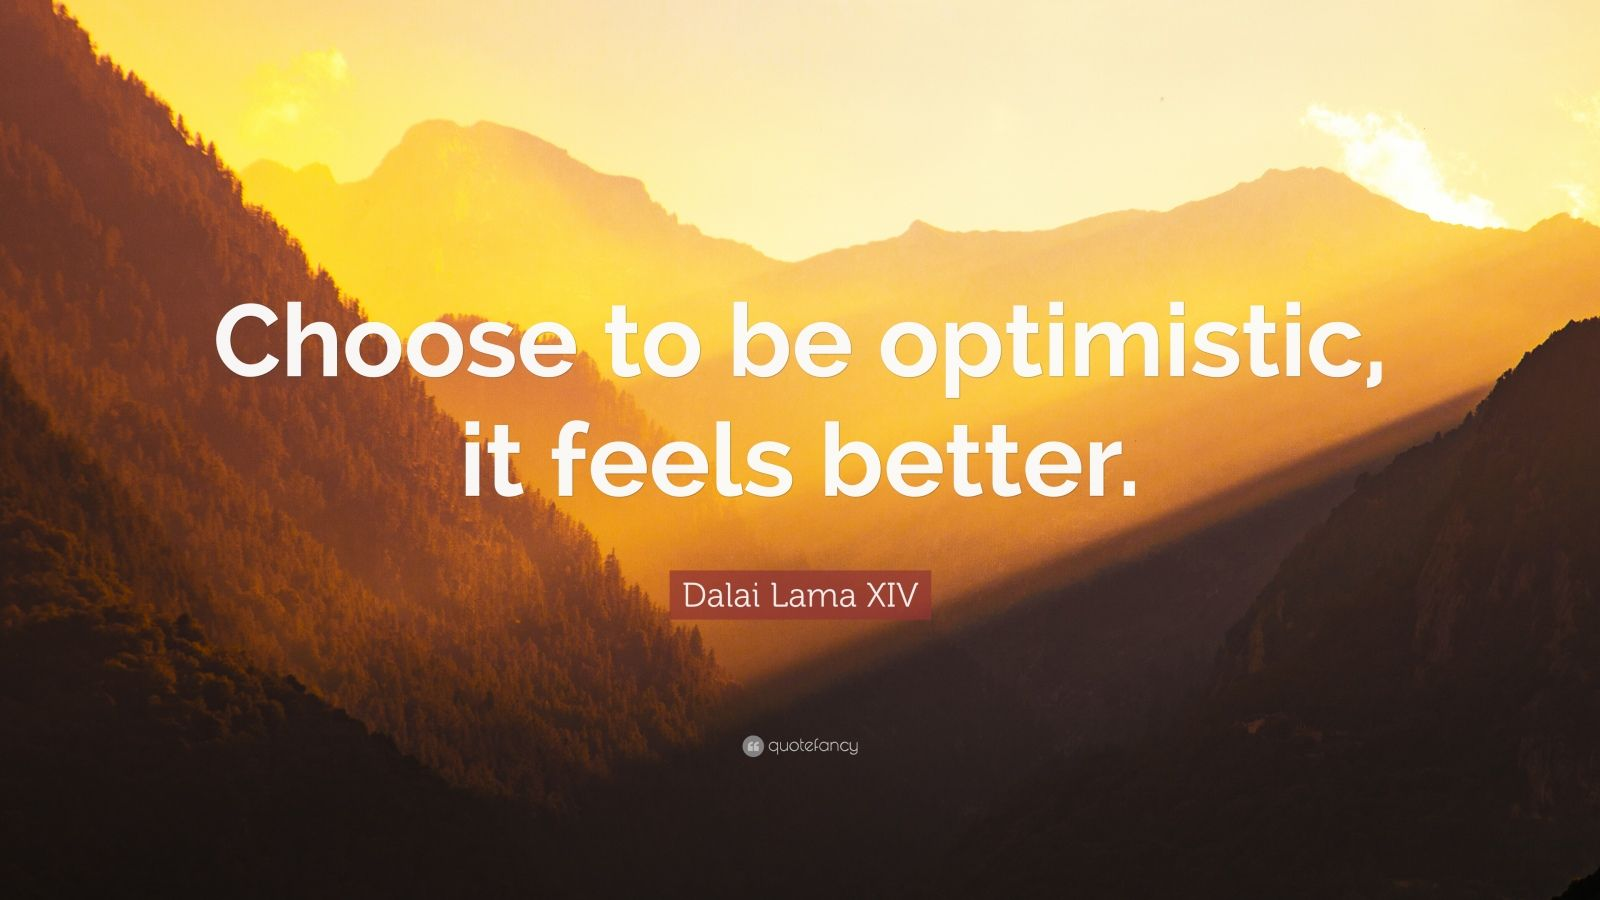 Dalai Lama Quotes Wallpapers Dalai Lama Xiv Quote Choose To Be Optimistic It Feels